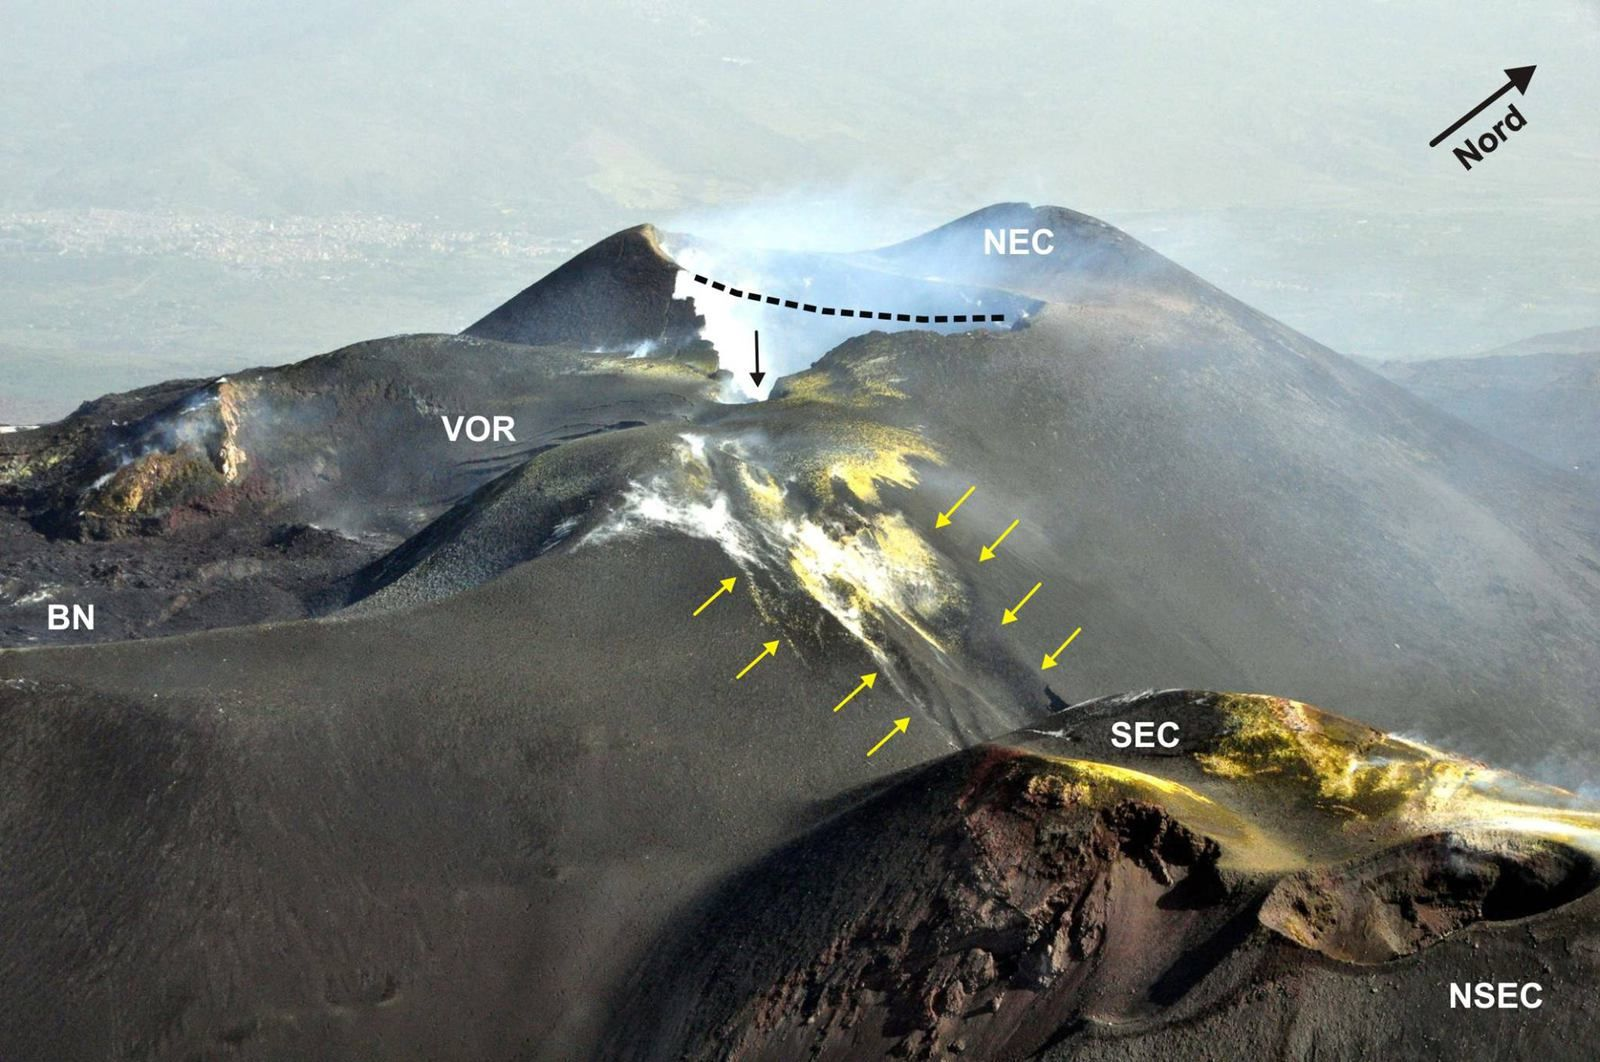 Etna summit area - morphological changes - photo and notes by Marco Neri